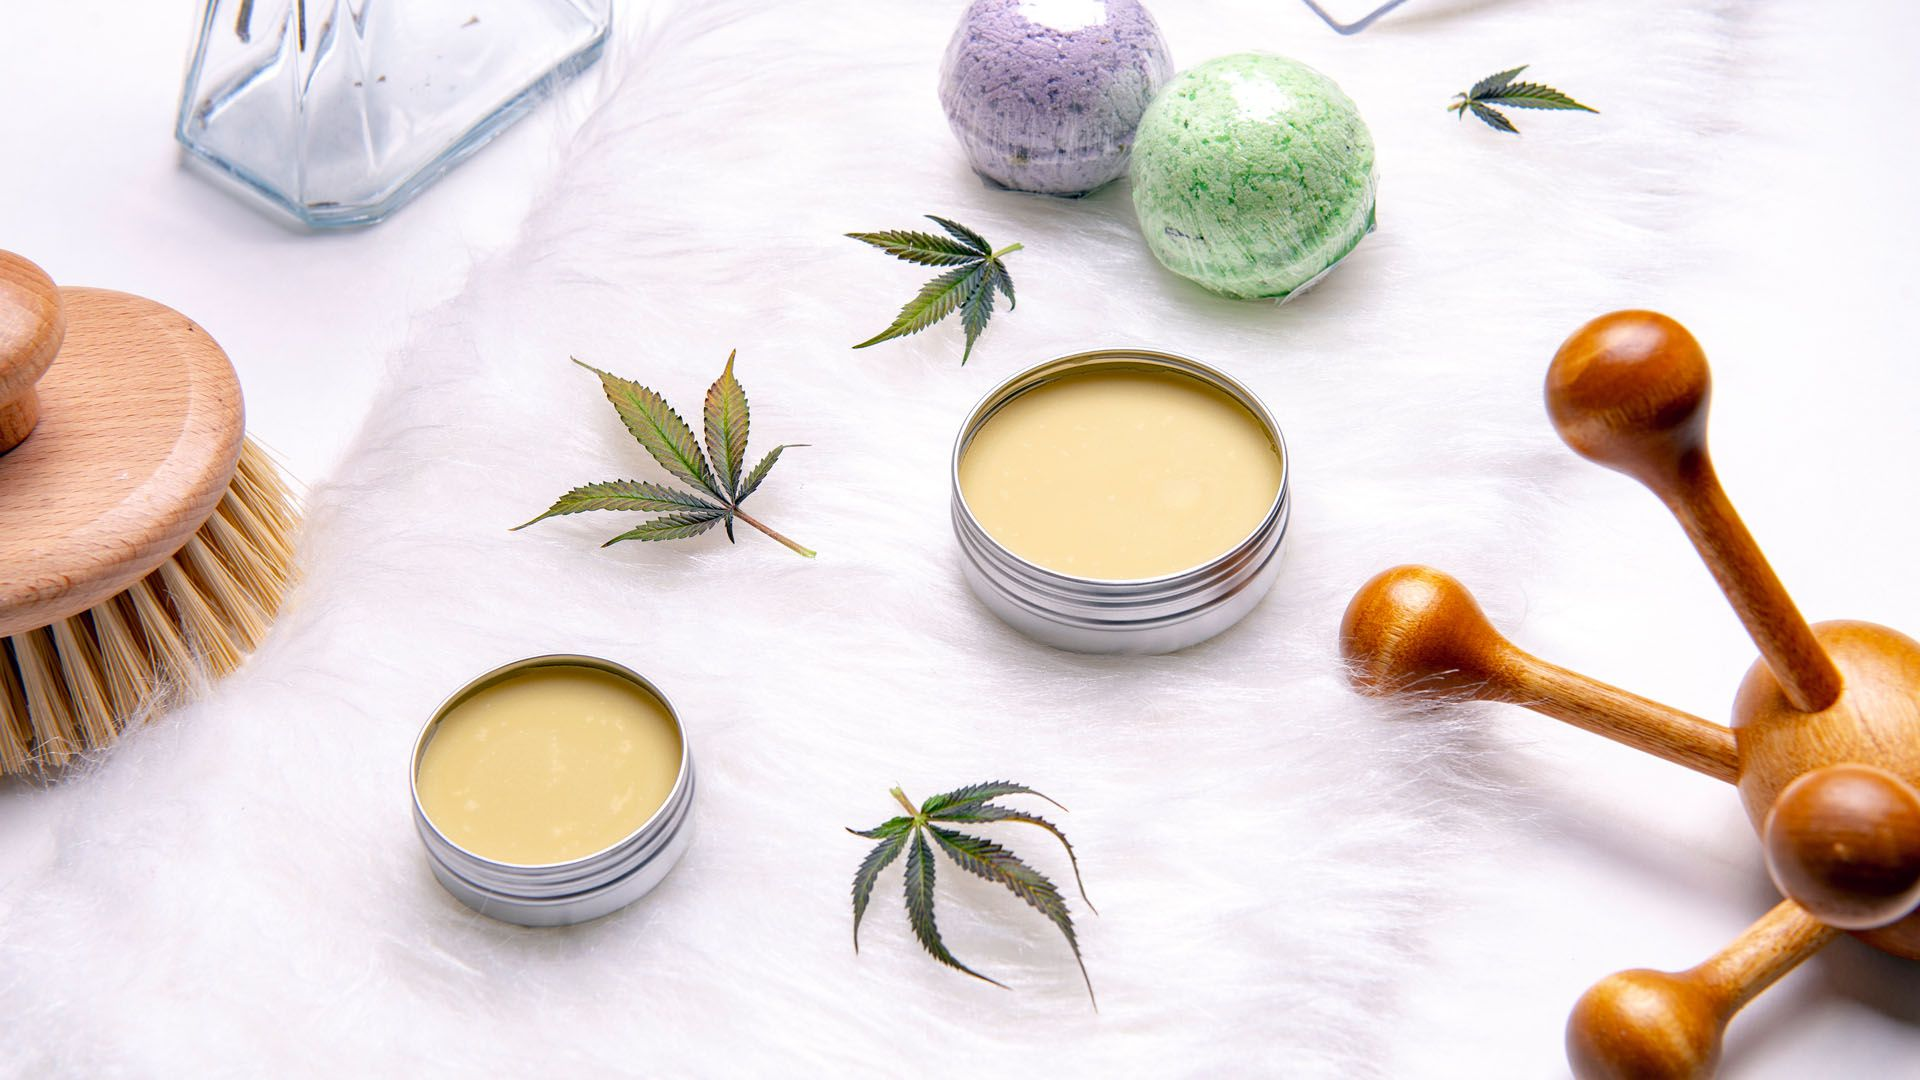 Several lip balms arranged in a pleasing pattern next to cannabis leaves